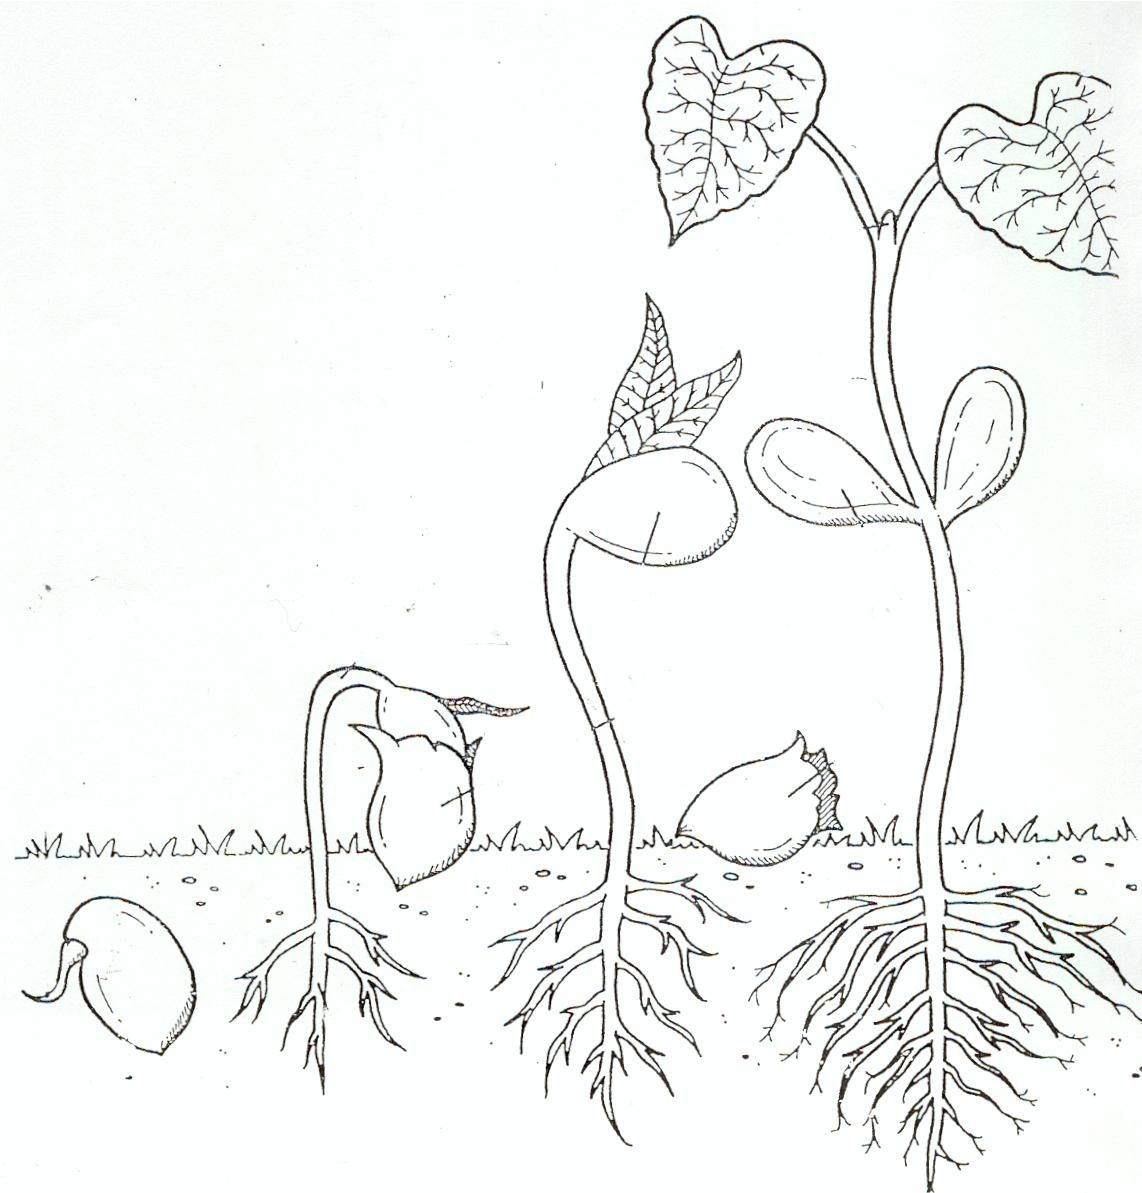 Life Cycle Coloring Page Of A Seed To Plant A Flower Life Cycle Life Cycles Plant Lessons